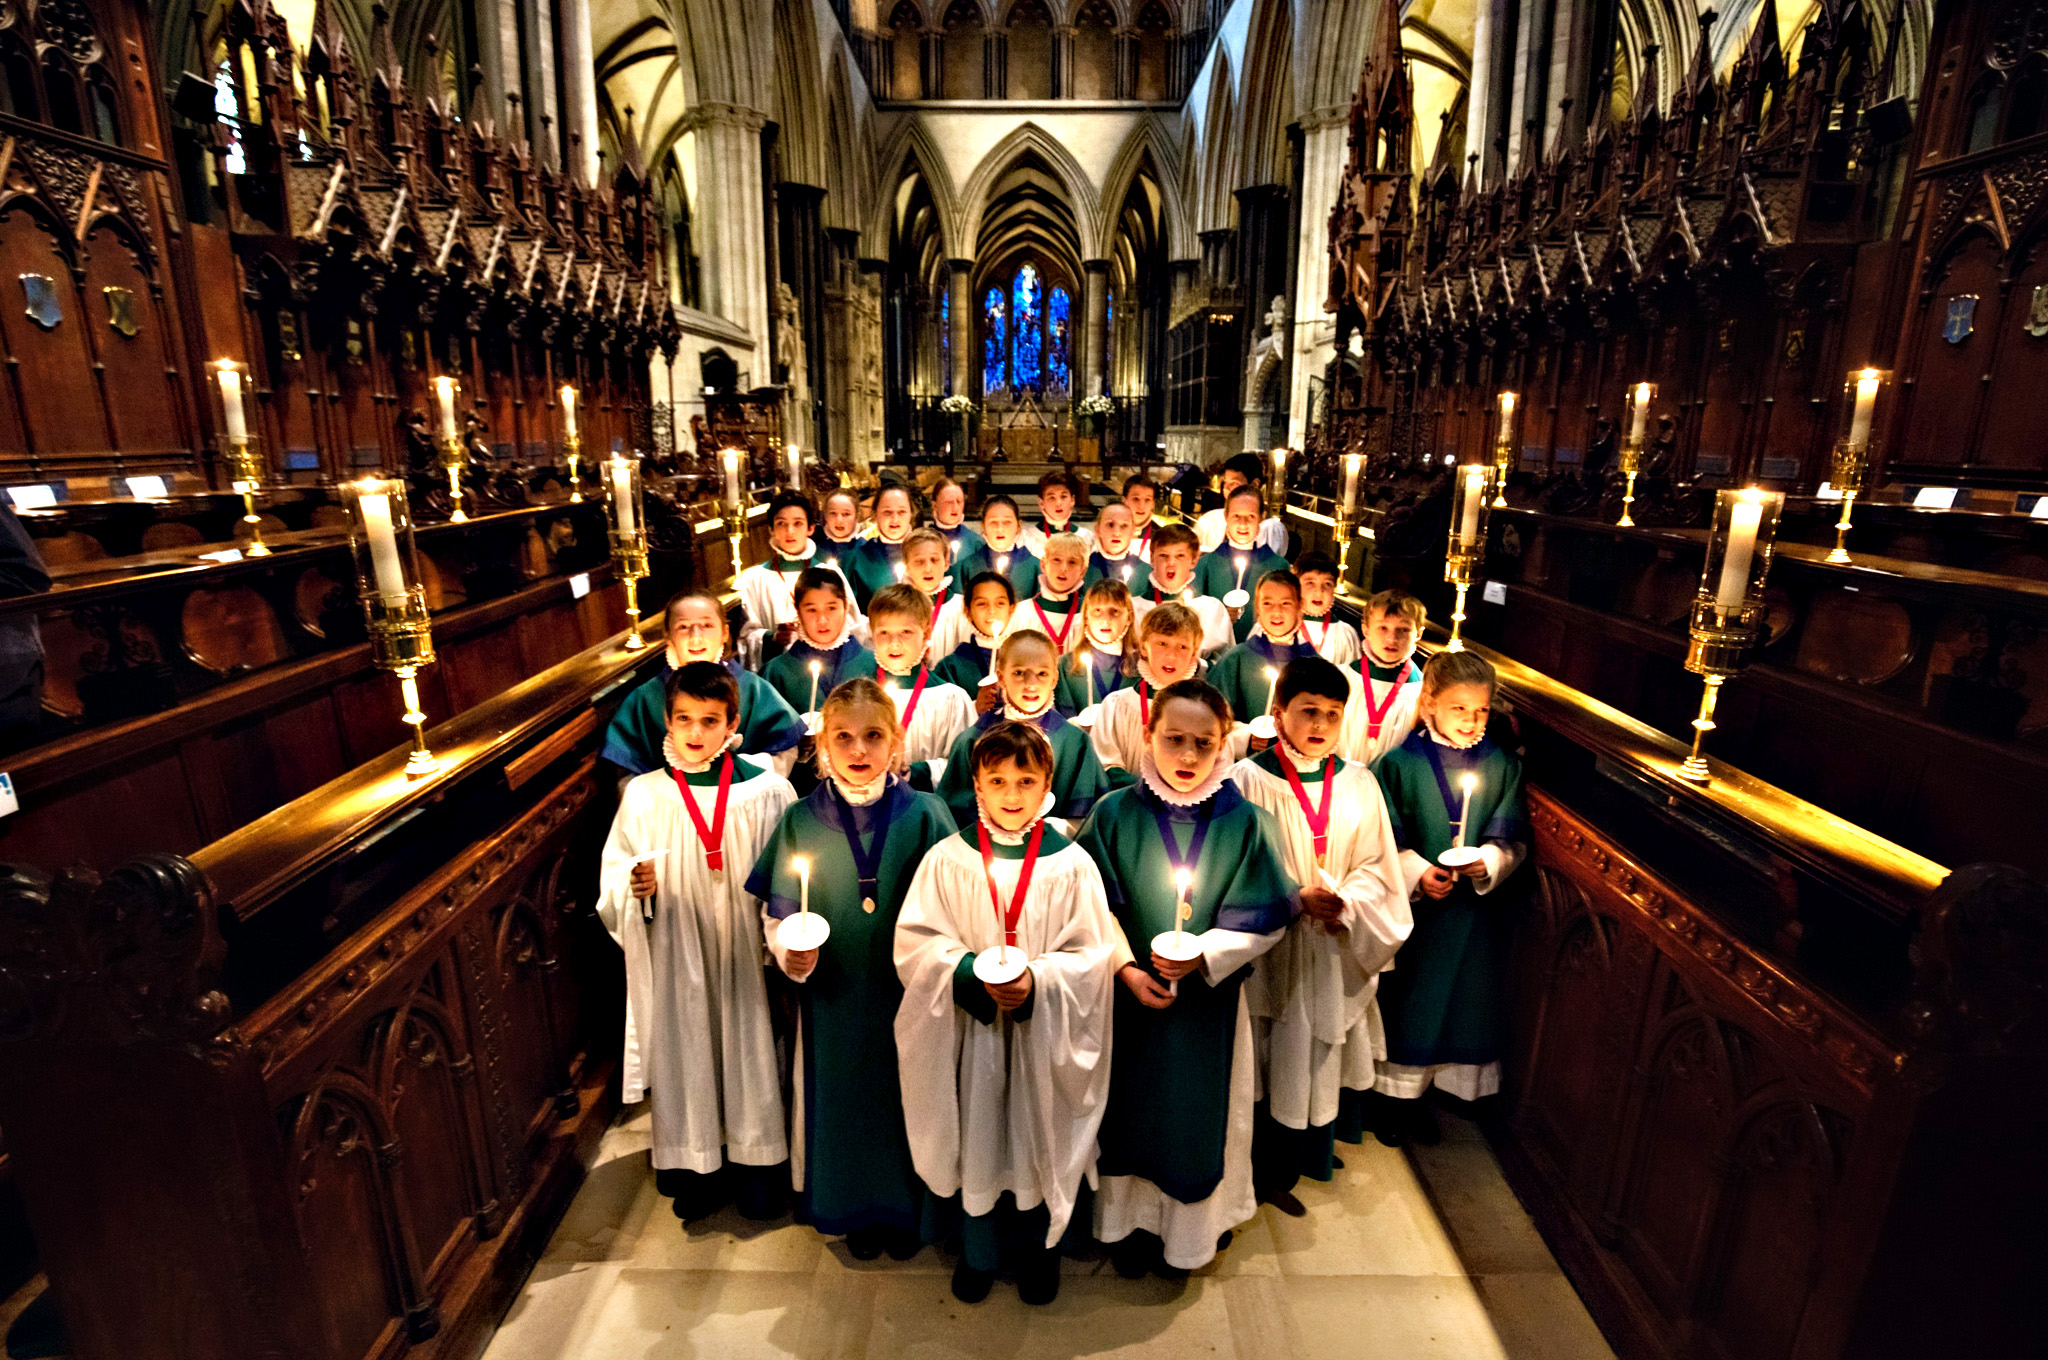 Choristers from the Salisbury Cathedral Choir practice ahead of the services that will be held in the cathedral marking Christmas Eve on Monday in Salisbury, England. Christmas has been celebrated in the cathedral for over 750 years since it was dedicated in 1258. It is thought that the foundation of the choir stretches back even further, with evidence of a song school in Salisbury as early as the 11th century.